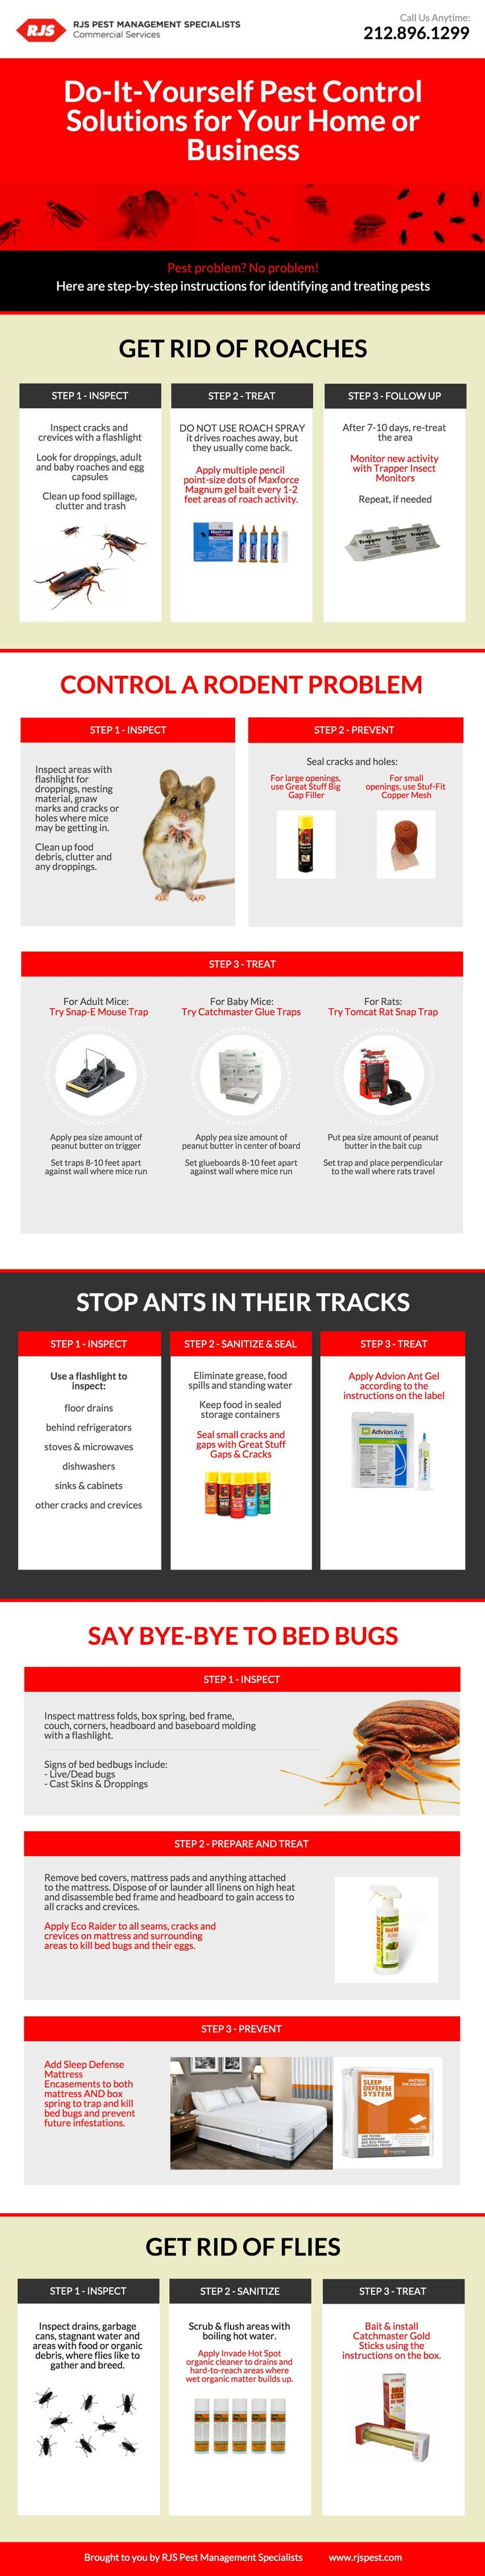 Best 25 bed bug pest control ideas on pinterest bed bug control diy pest control infographic how to get ride of bed bugs how to get solutioingenieria Choice Image